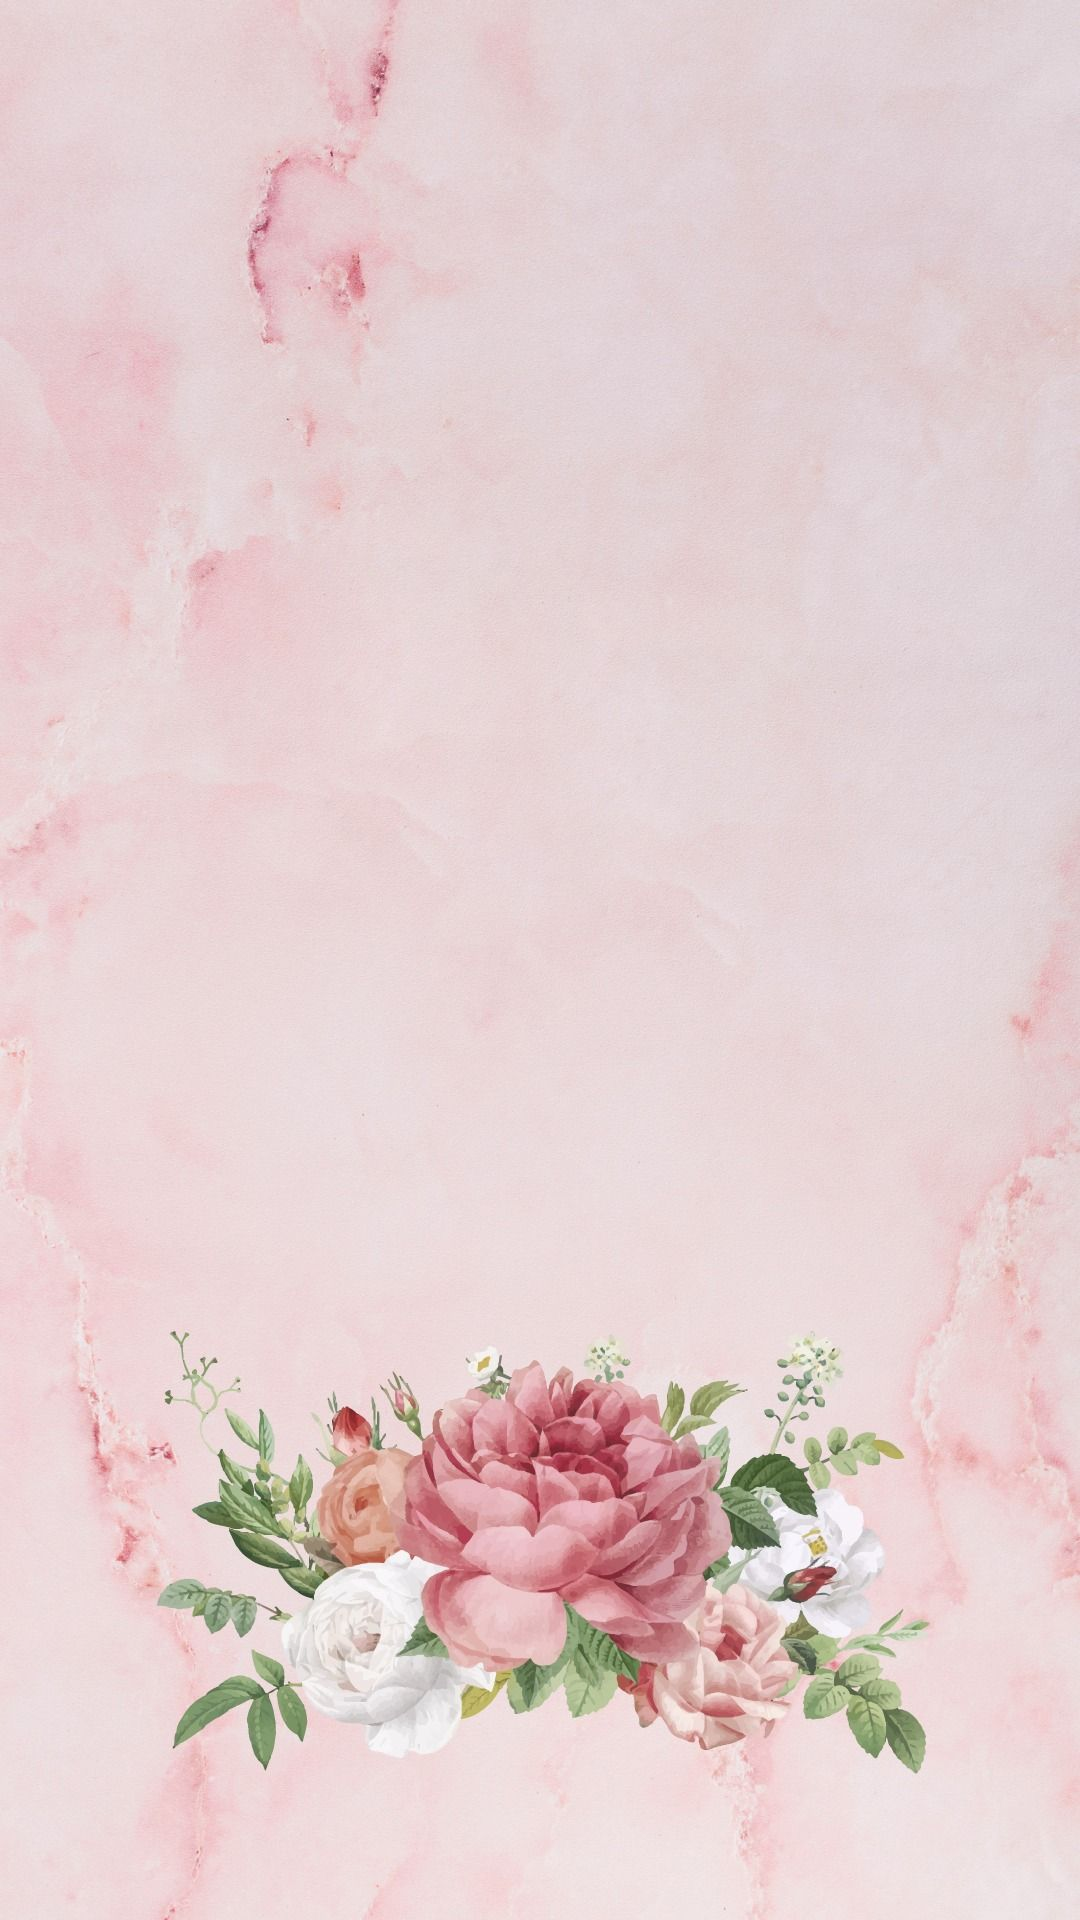 20 Latest Iphone Wallpaper And Background Gold Wallpaper Background Pink Wallpaper Iphone Floral Wallpaper Iphone